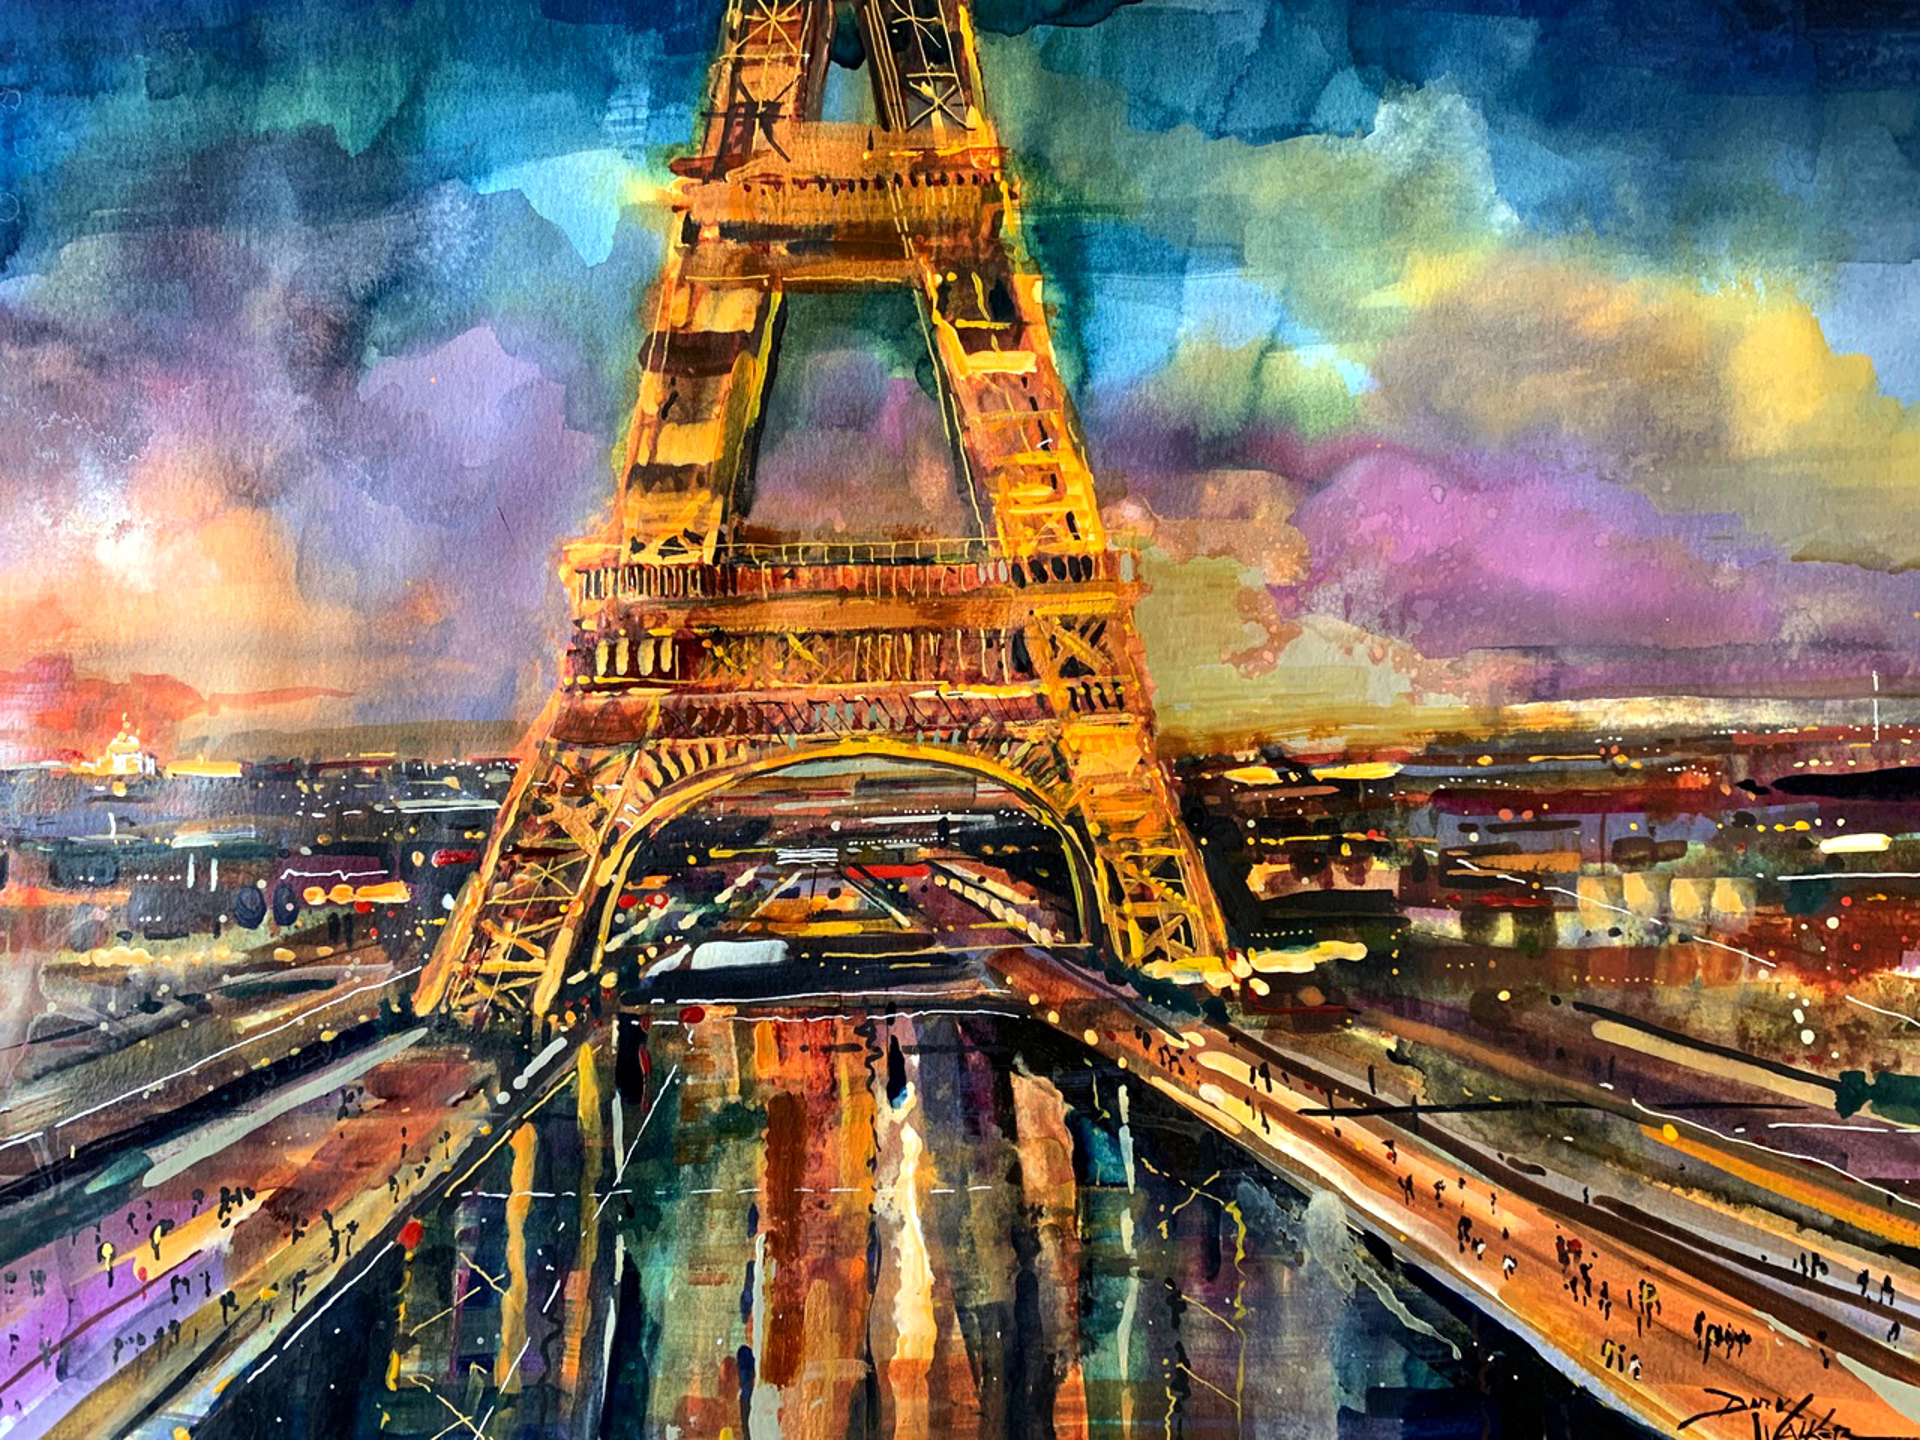 Eiffel Tower at Dusk by Dirk Walker